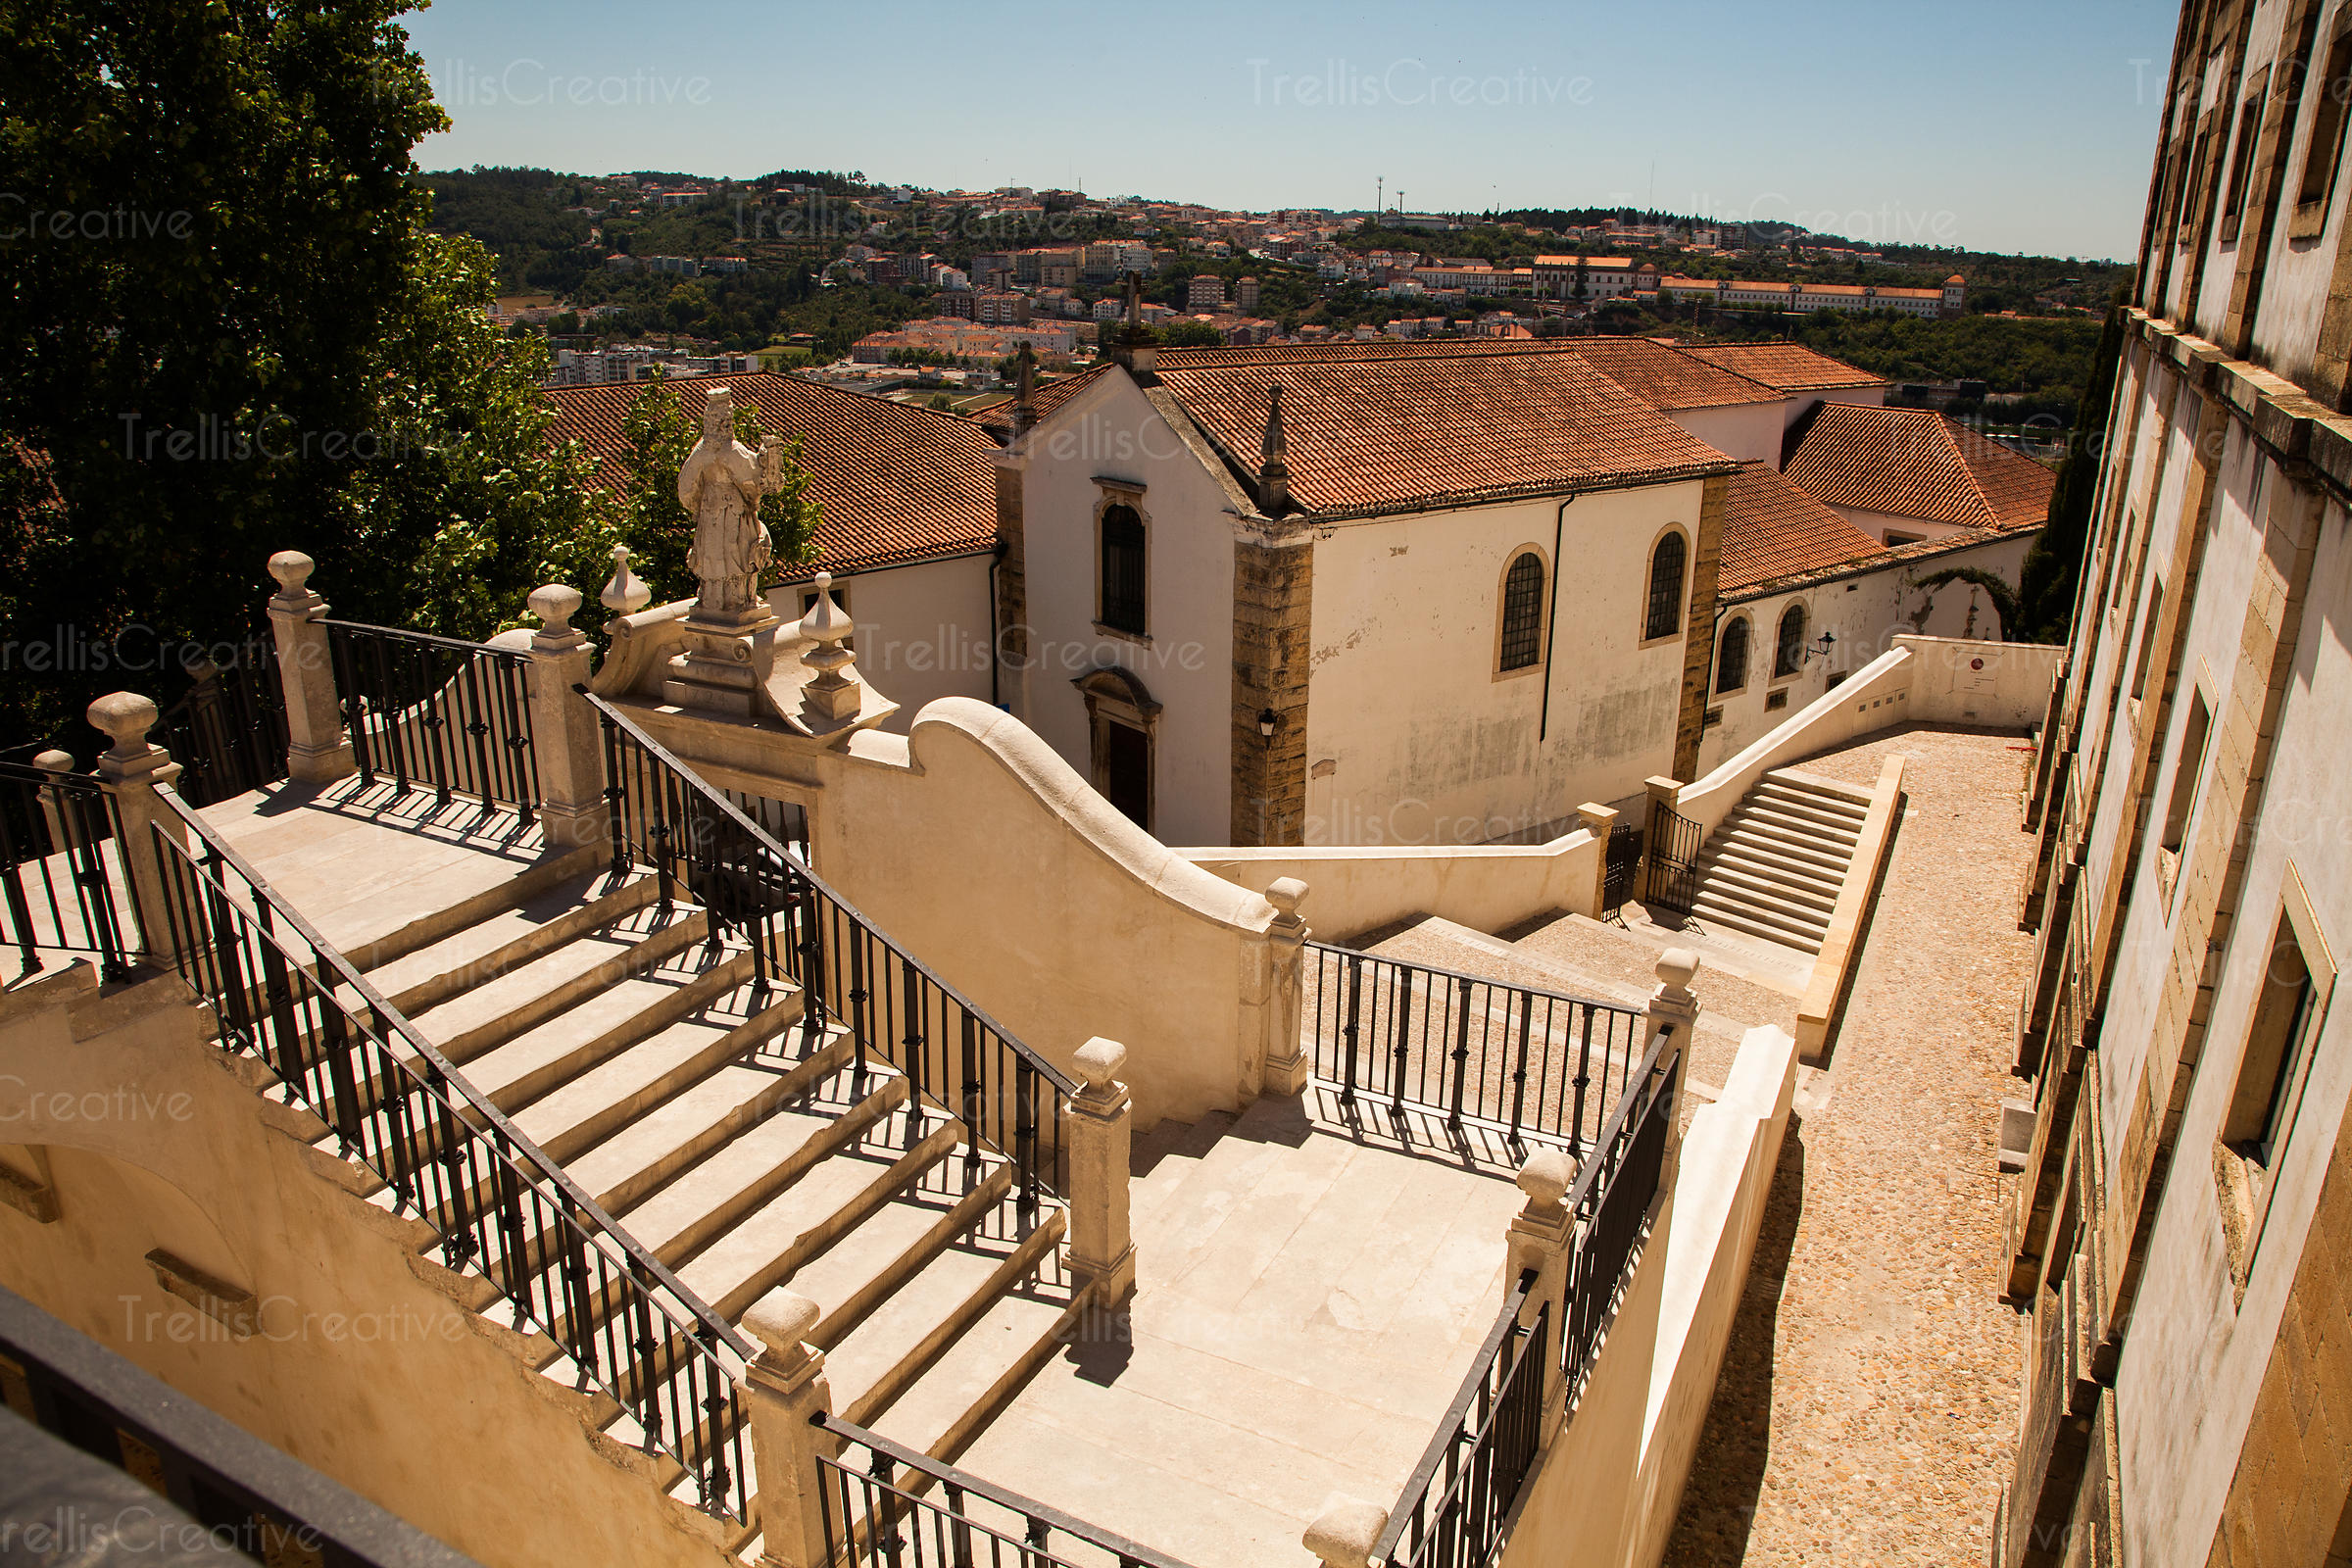 Artistic staircases and old buildings in Portugal